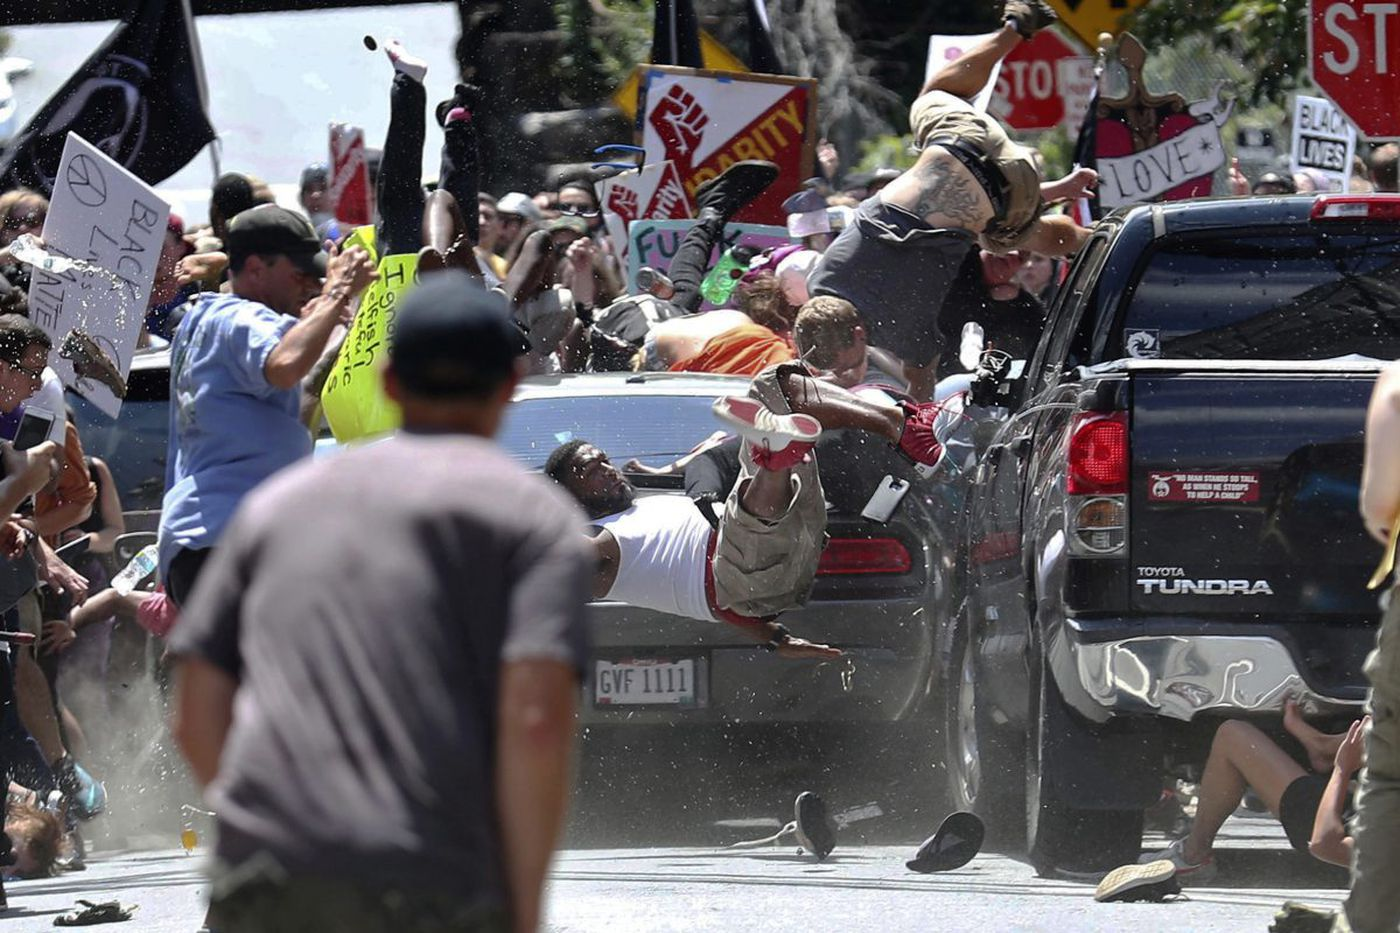 James Alex Fields Jr. drives his car into a crowd of people demonstrating against a white nationalist rally in Charlottesville, Va., on Aug. 12, 2017.